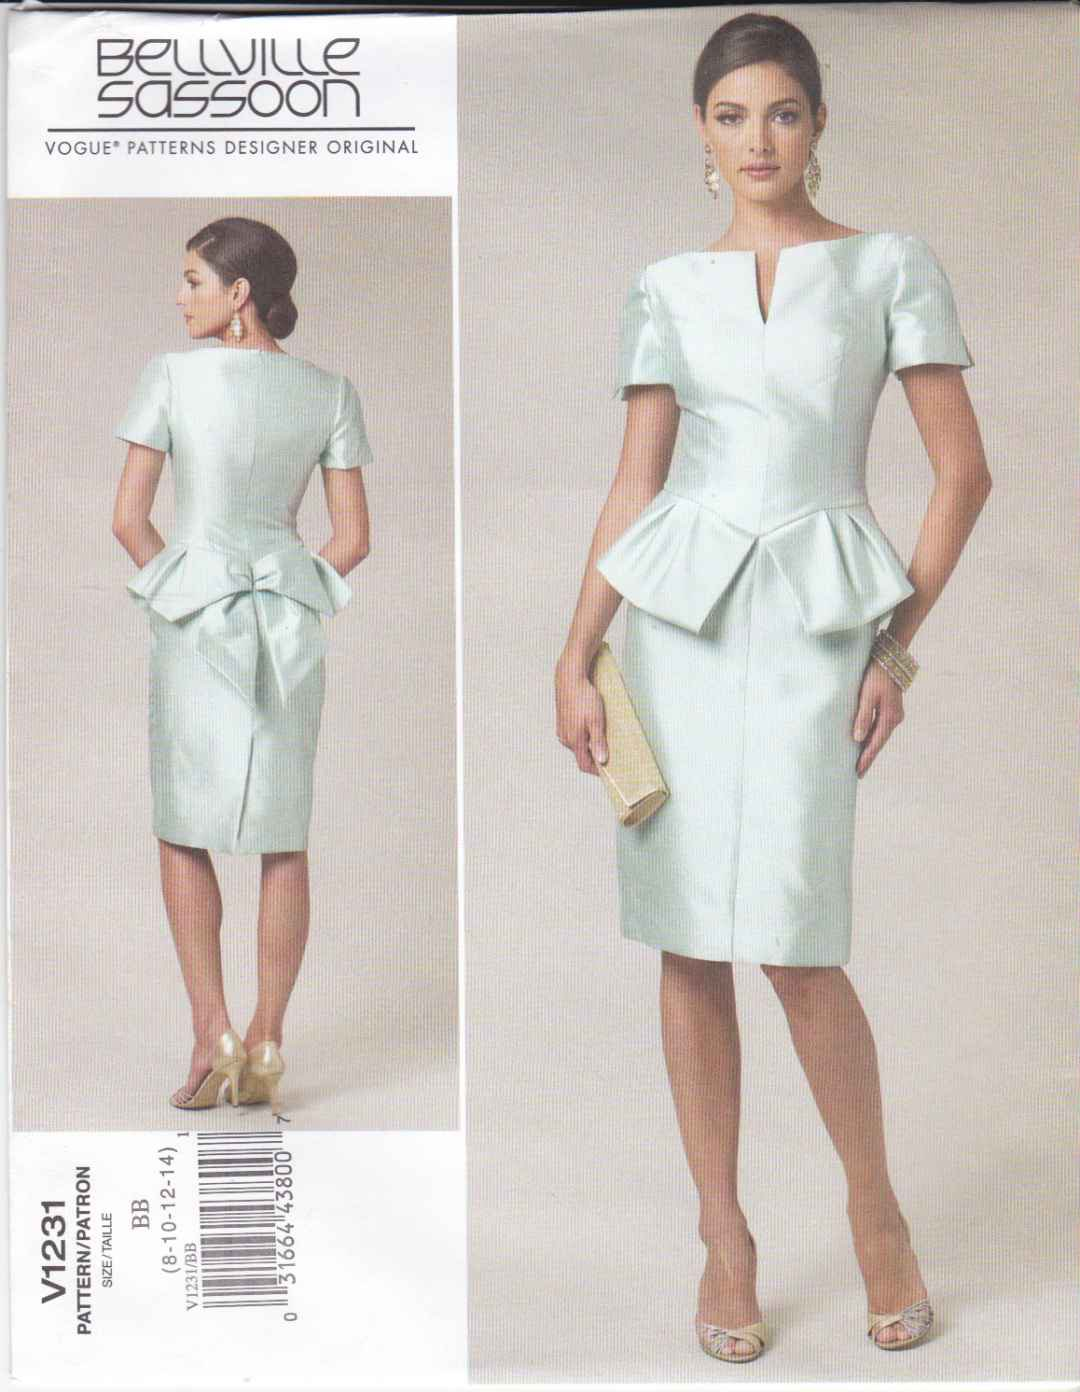 Vogue Sewing Pattern 1231 V1231 Misses Size 16-22 Bellville Sassoon Lined Straight Dress Peplum